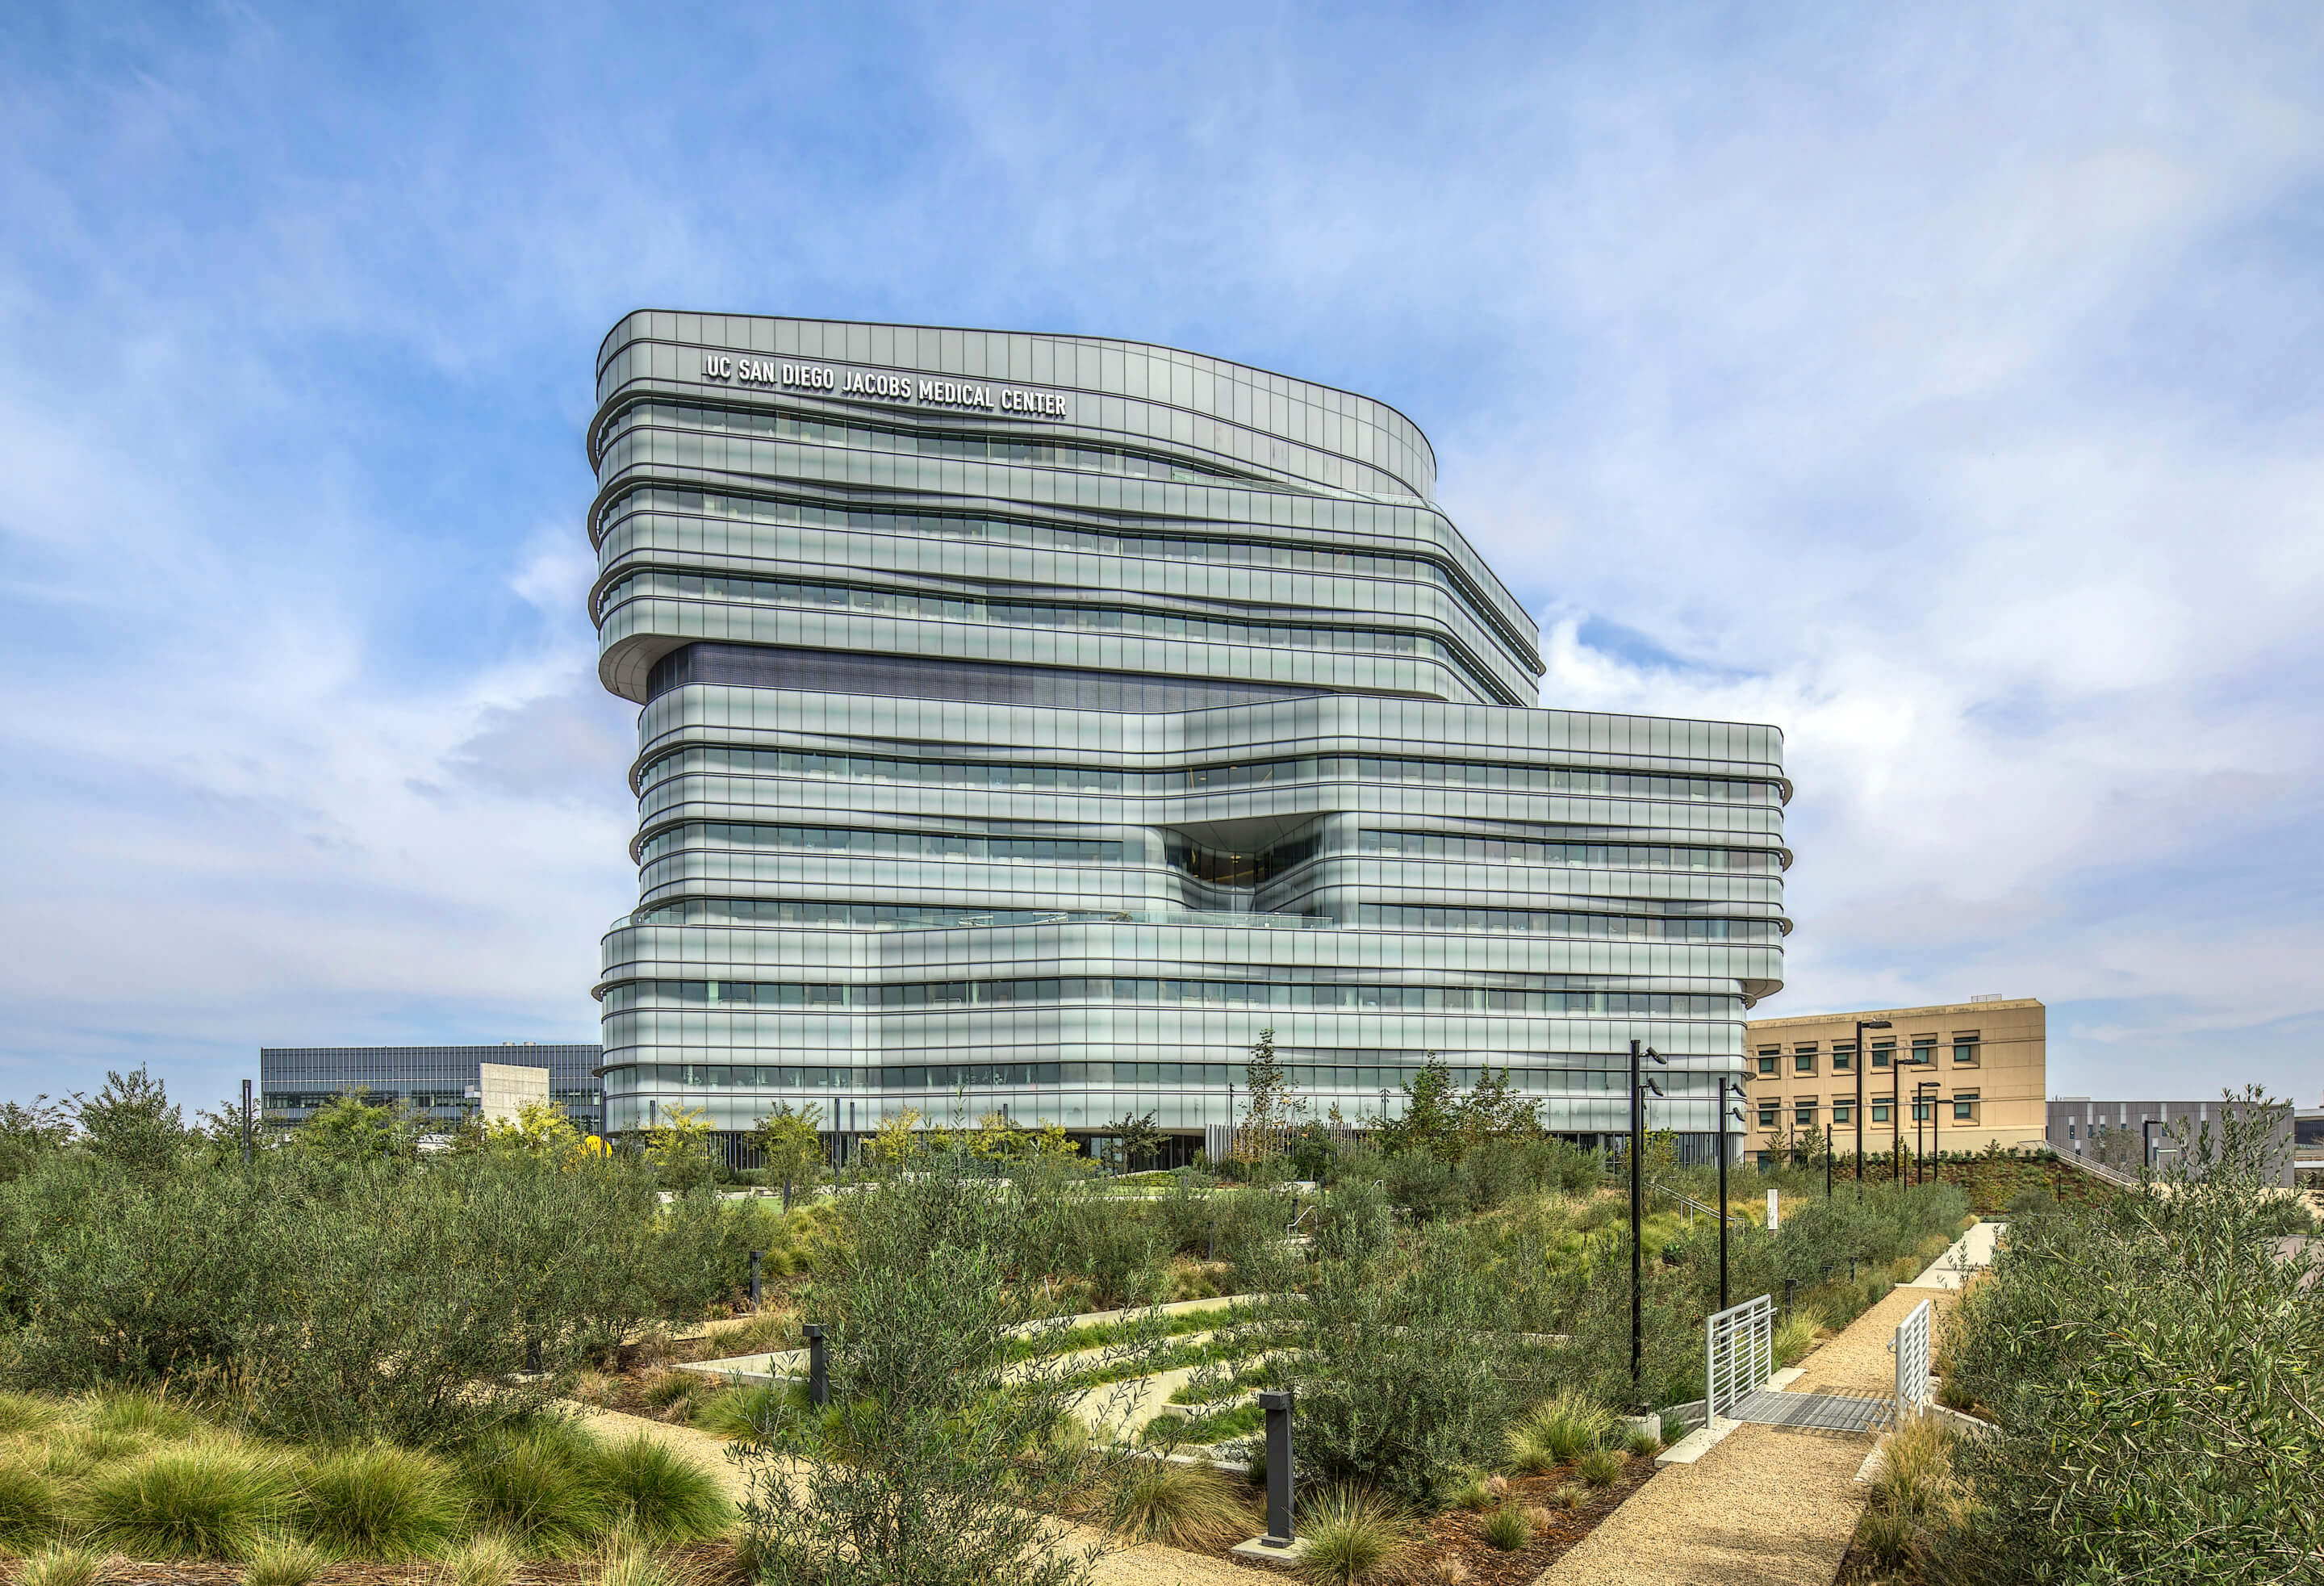 Image of the Jacobs Medical Center in San Diego and its glass skin